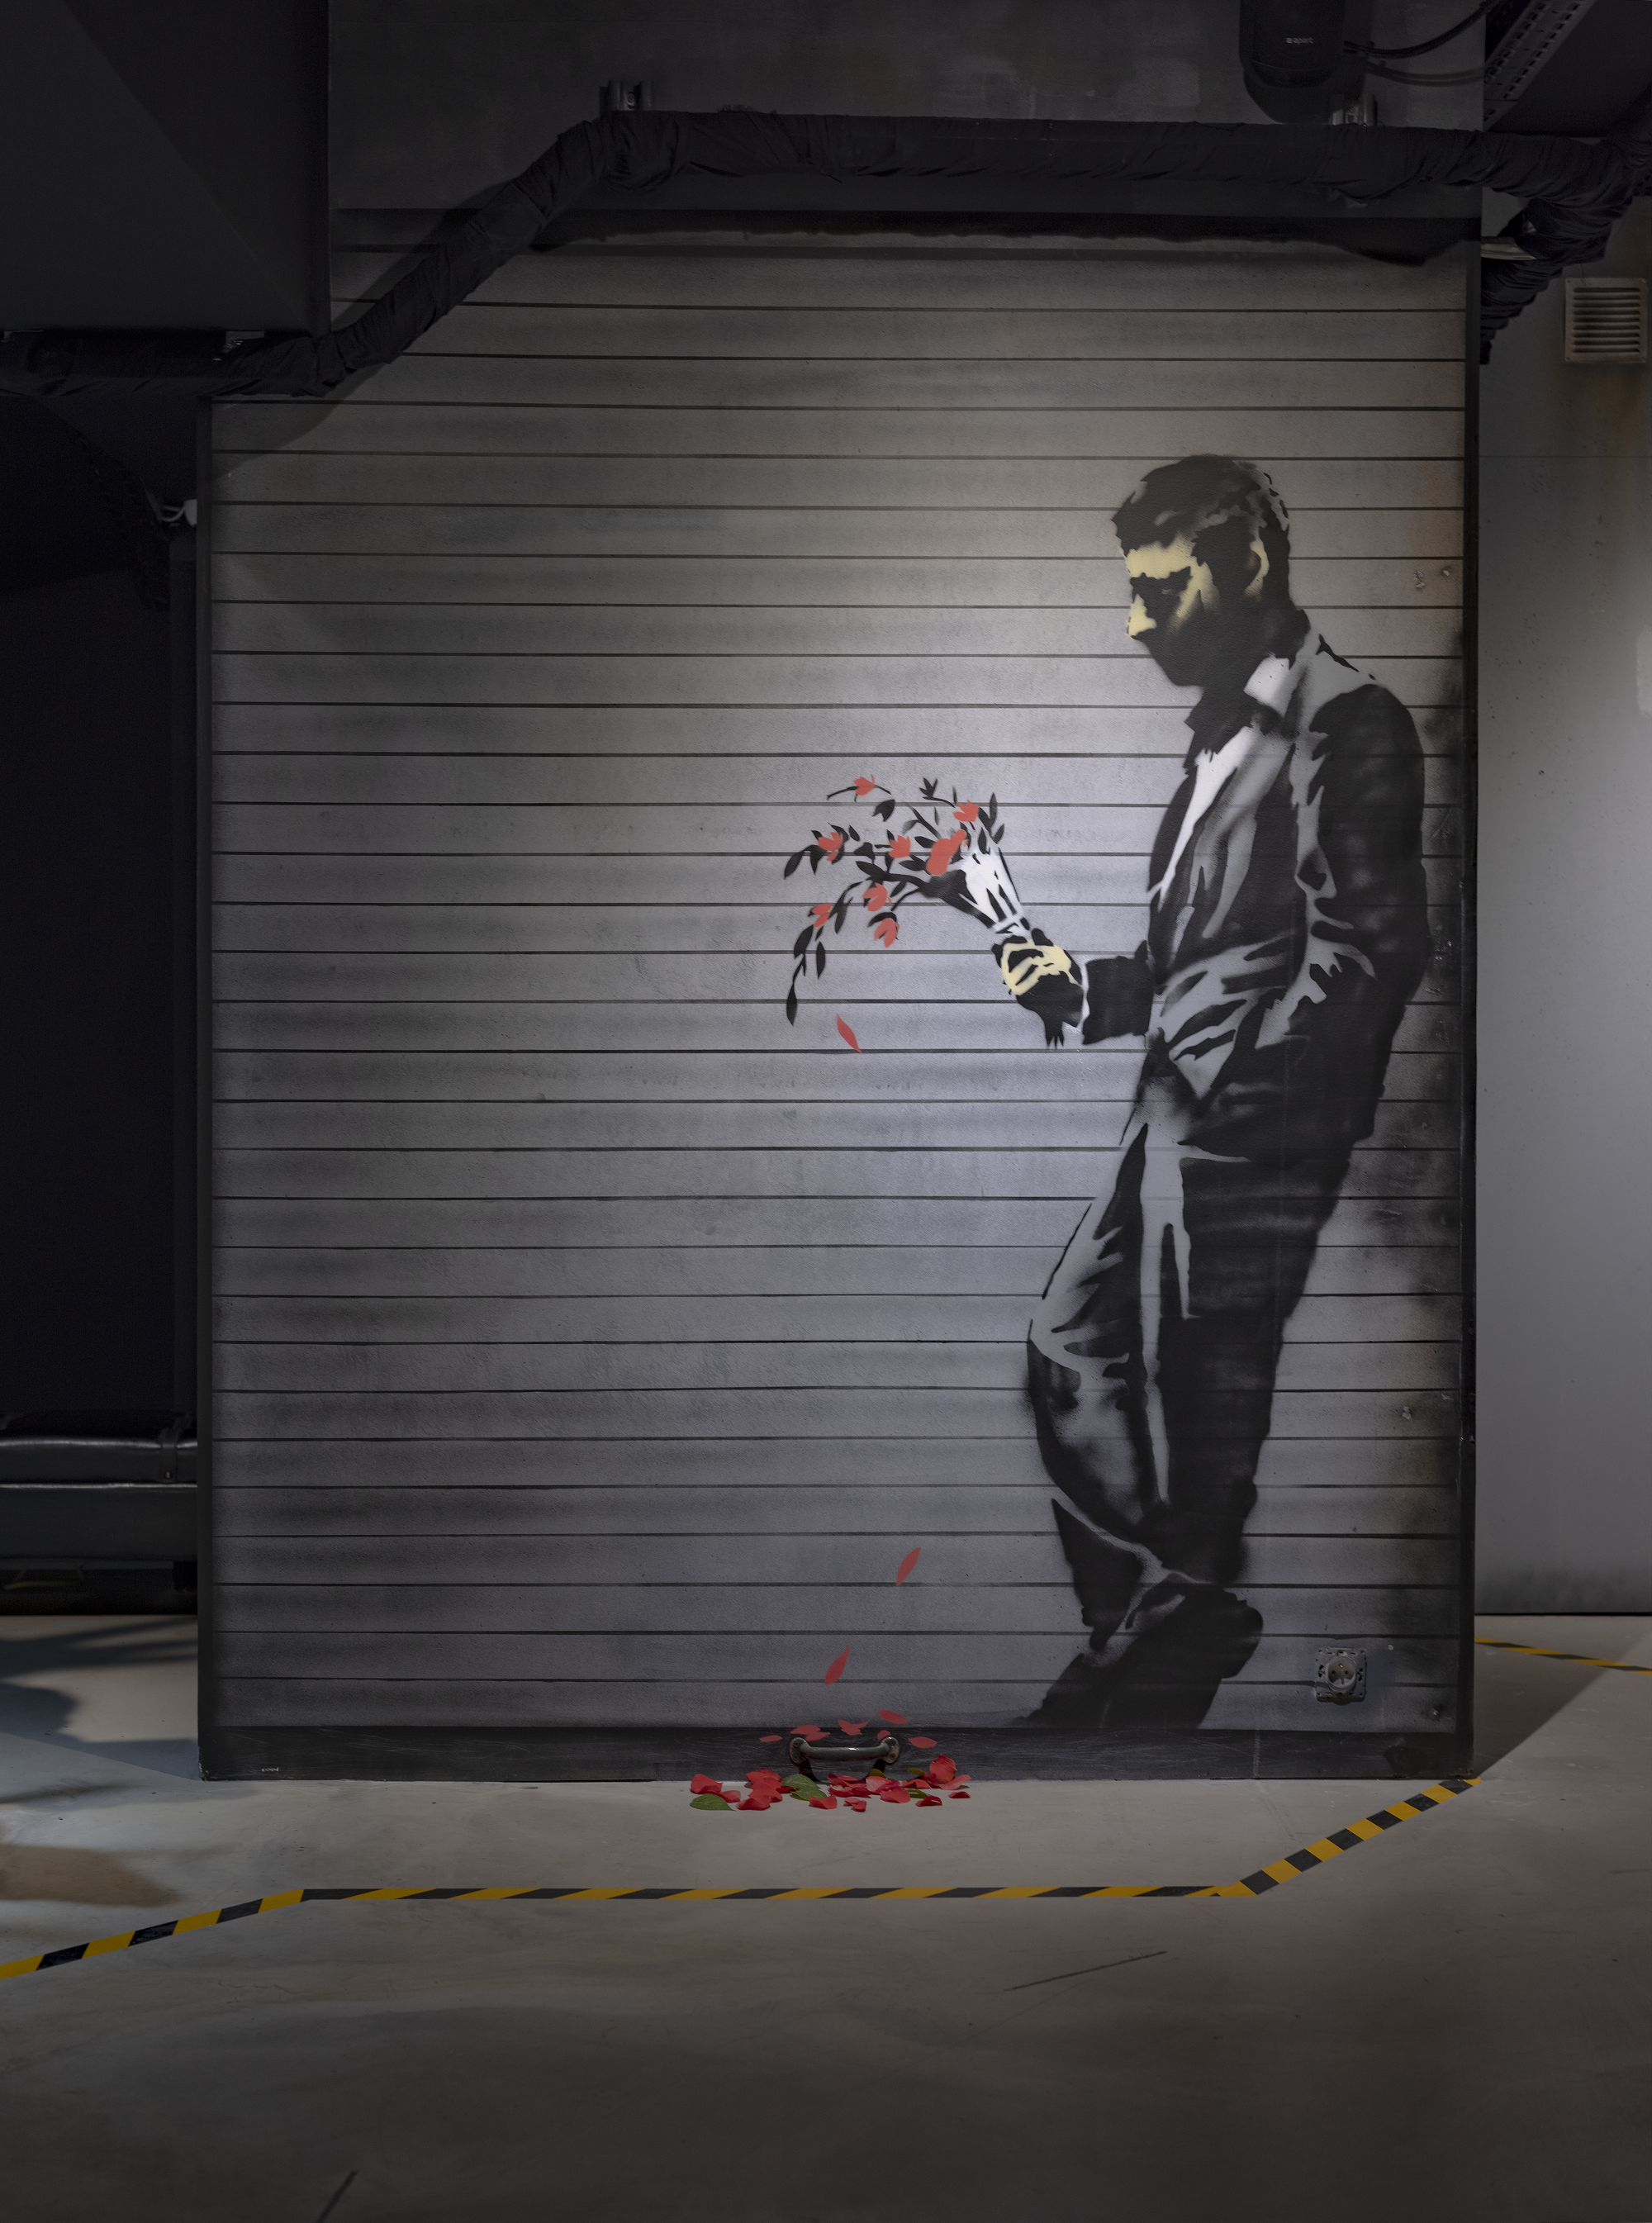 """Waiting In Vain… at the door of the club"". Banksy dropped this image of a man waiting with his red fading flowers on the streets of New York City in 2013."